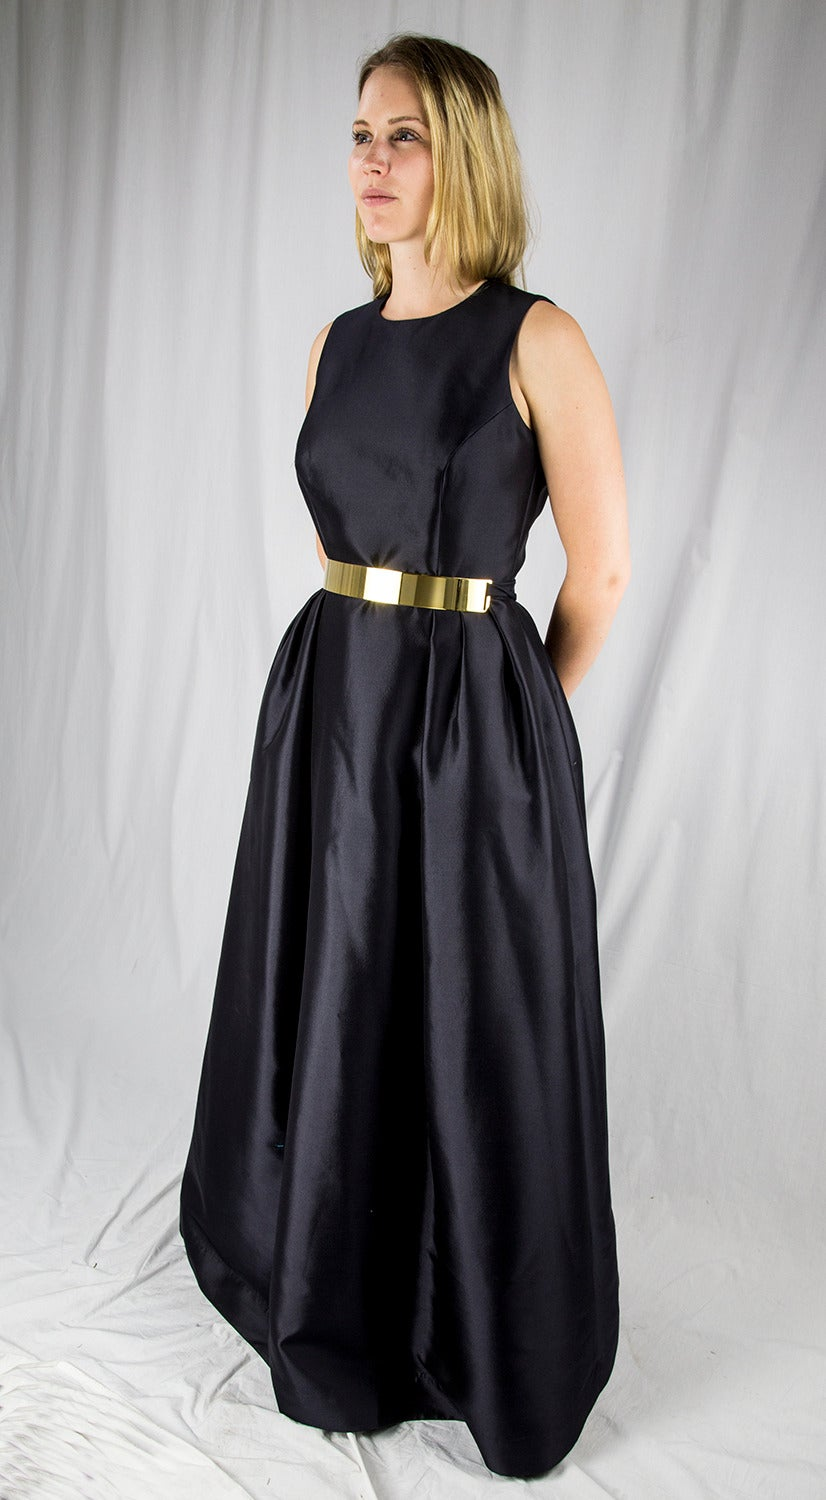 Wayne Clark Black Gold Belted Gown In Excellent Condition For Sale In Montreal, CA